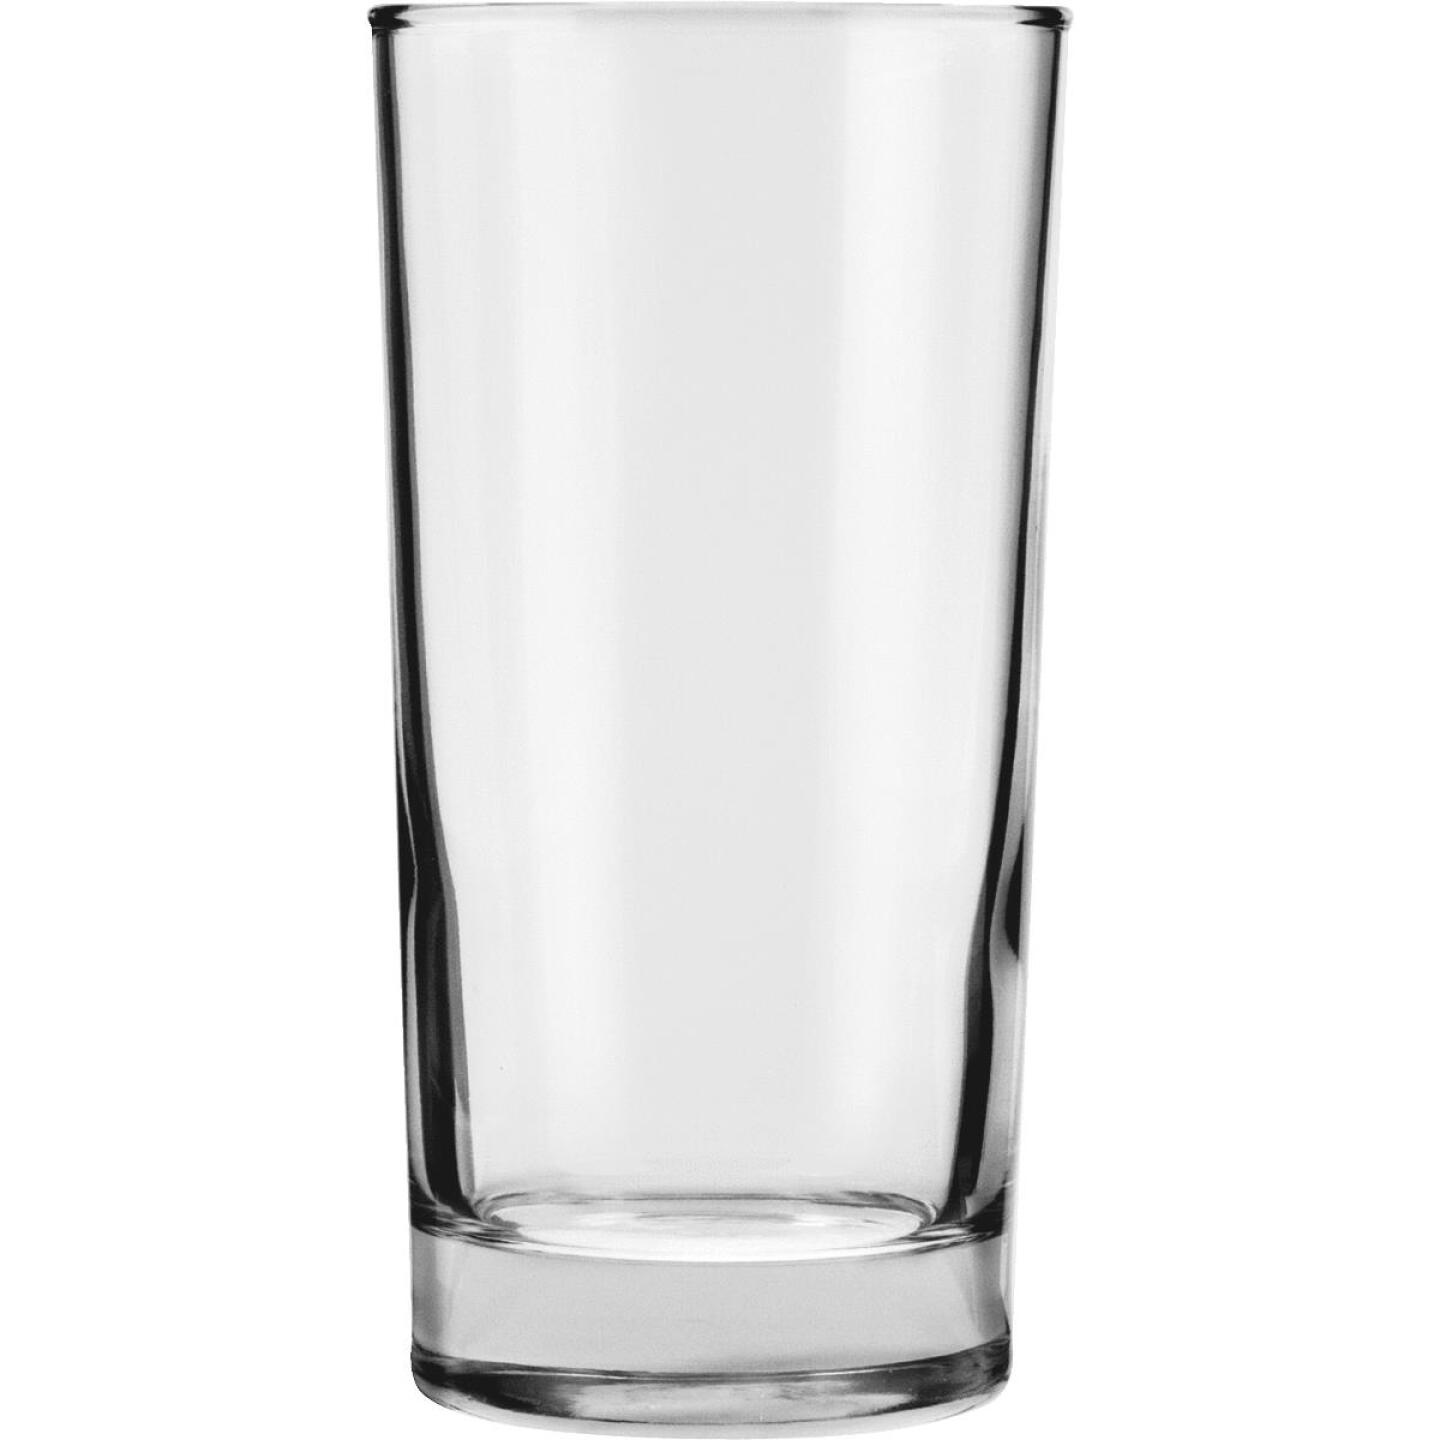 Anchor Hocking Clear 12.5 Oz. Glass Image 1